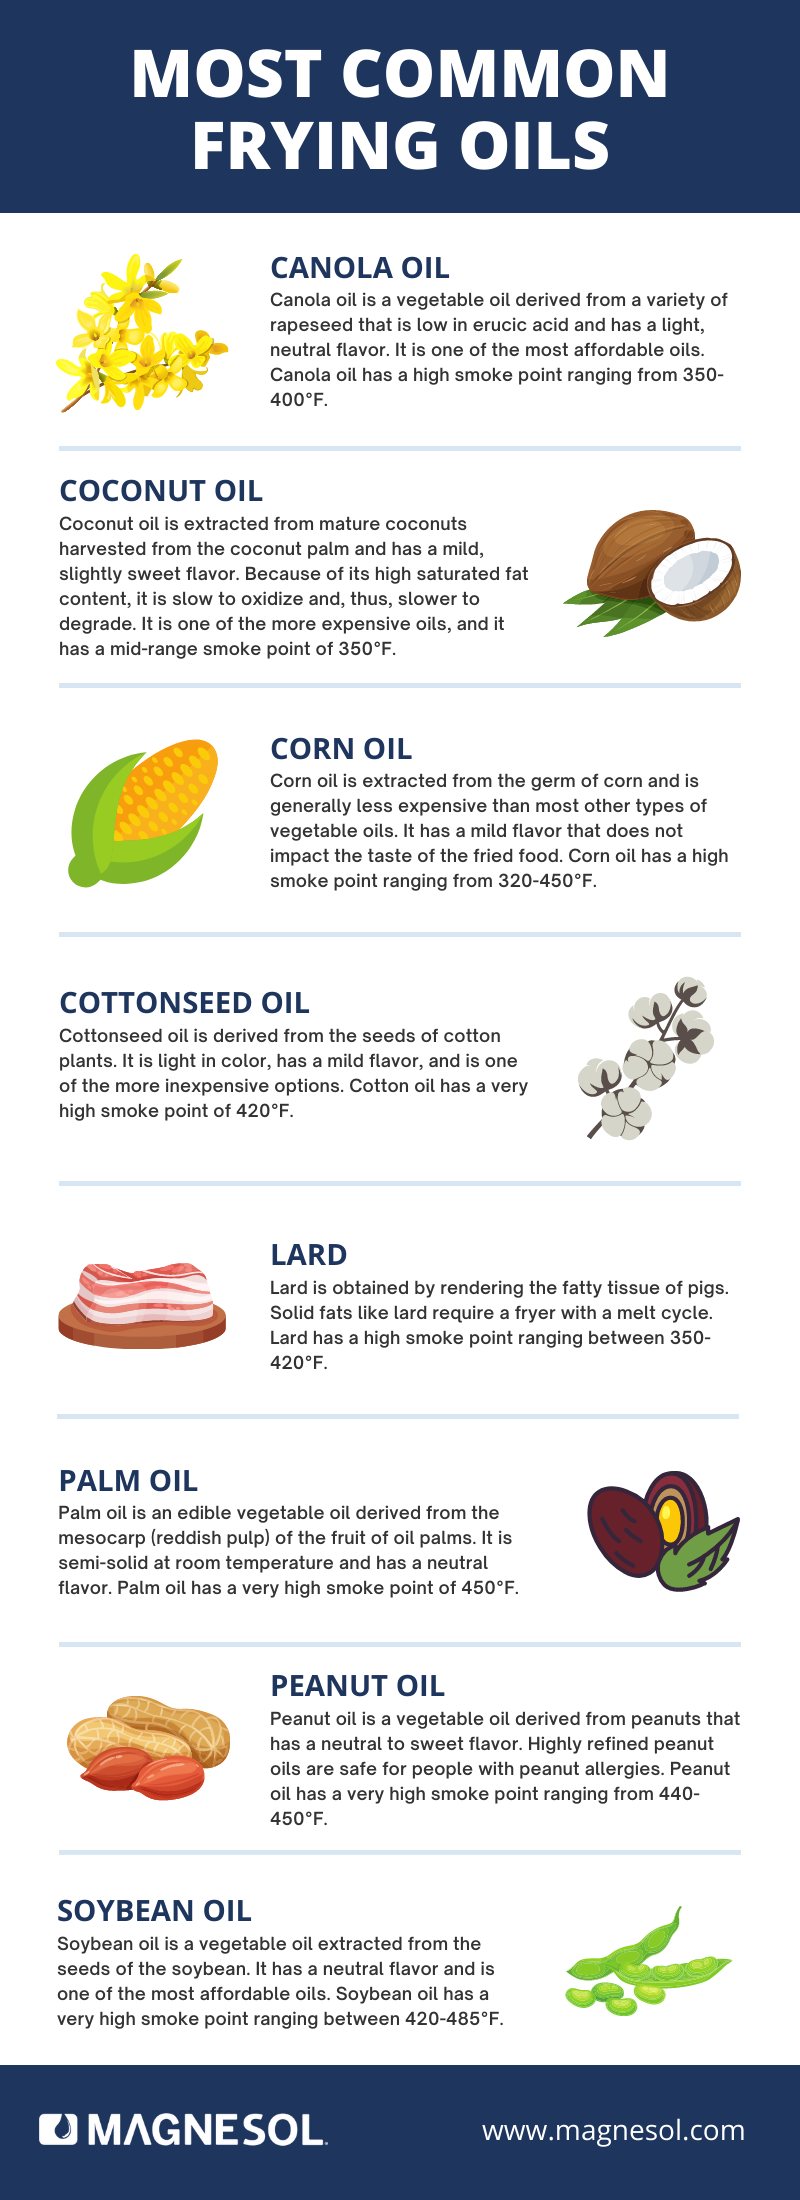 Most Common Frying Oils